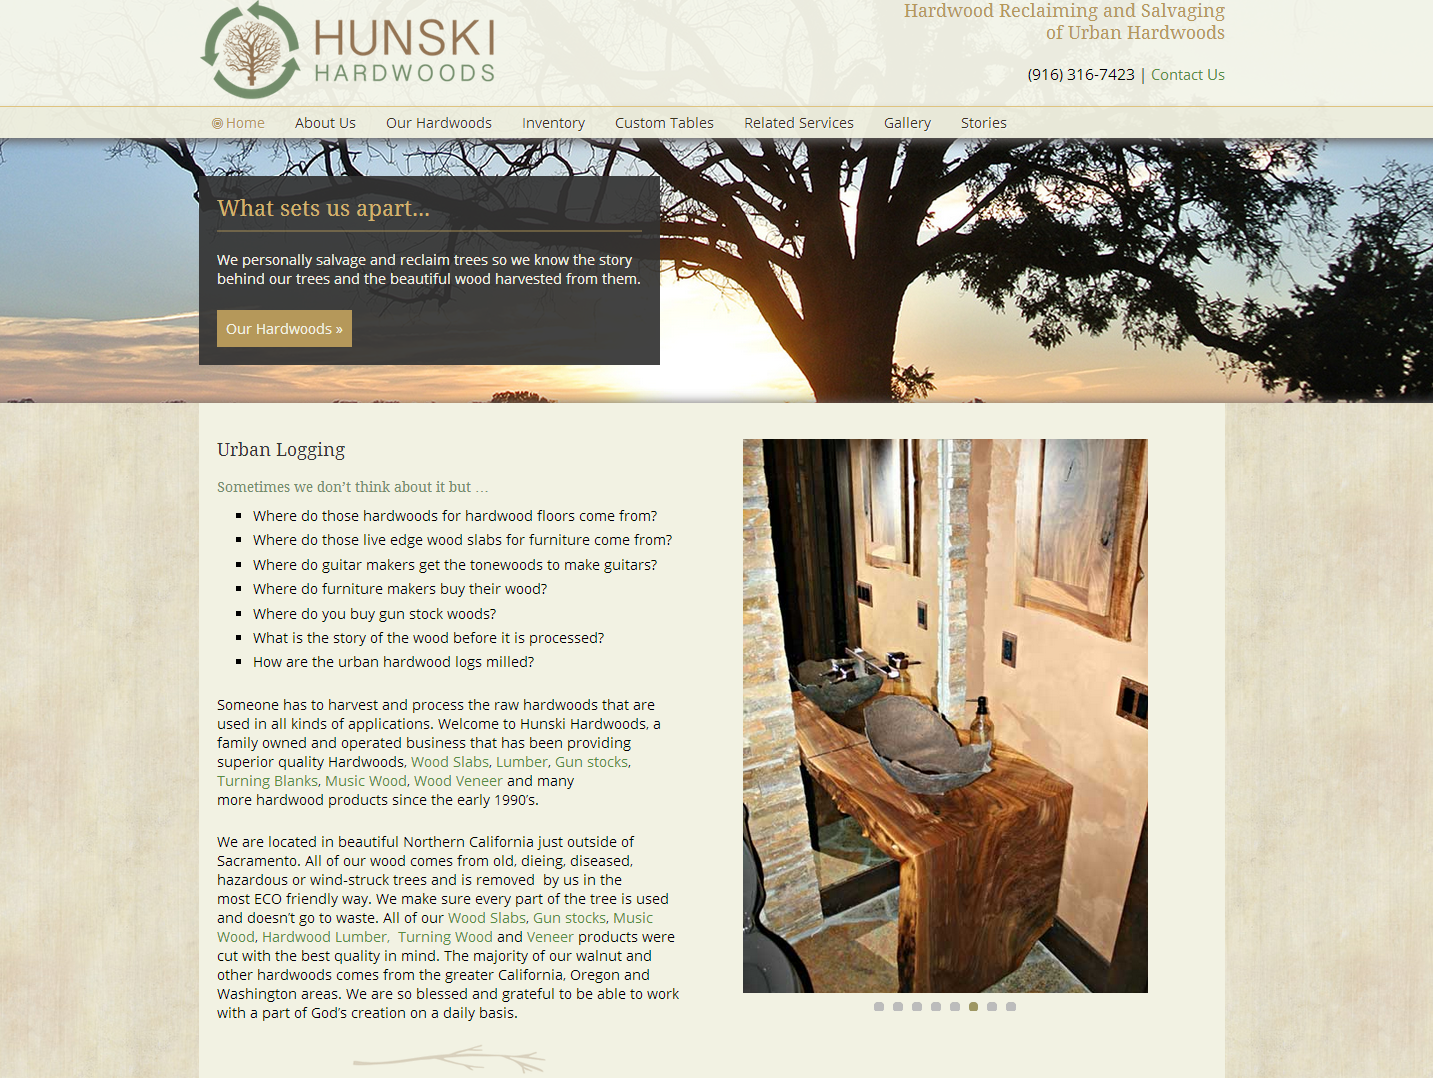 hunskihardwoodswebsite